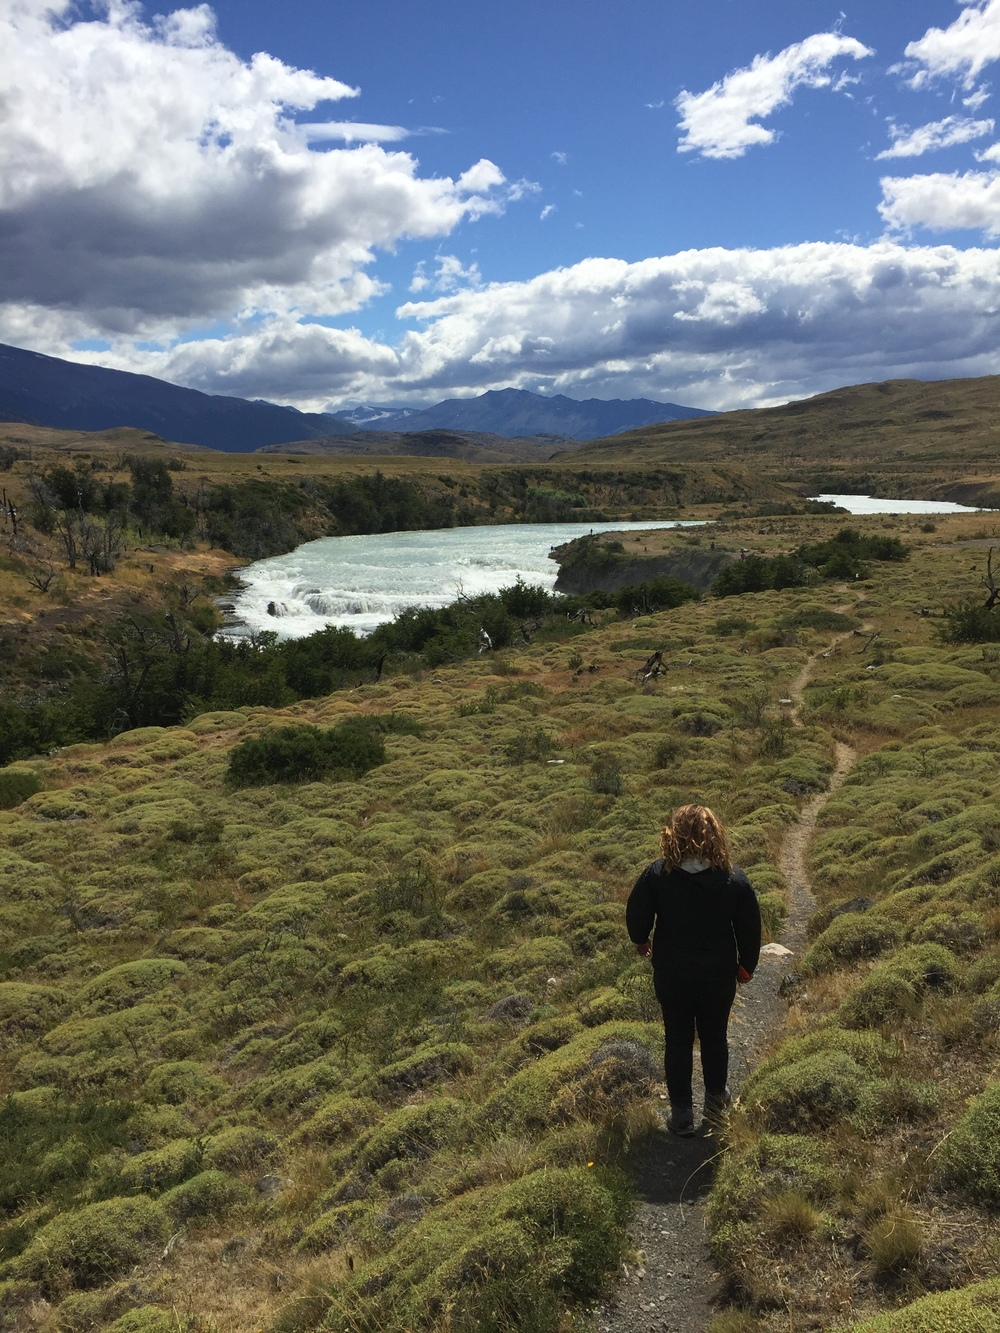 Approaching the Salto Grande waterfall in Torres del Paine National Park.